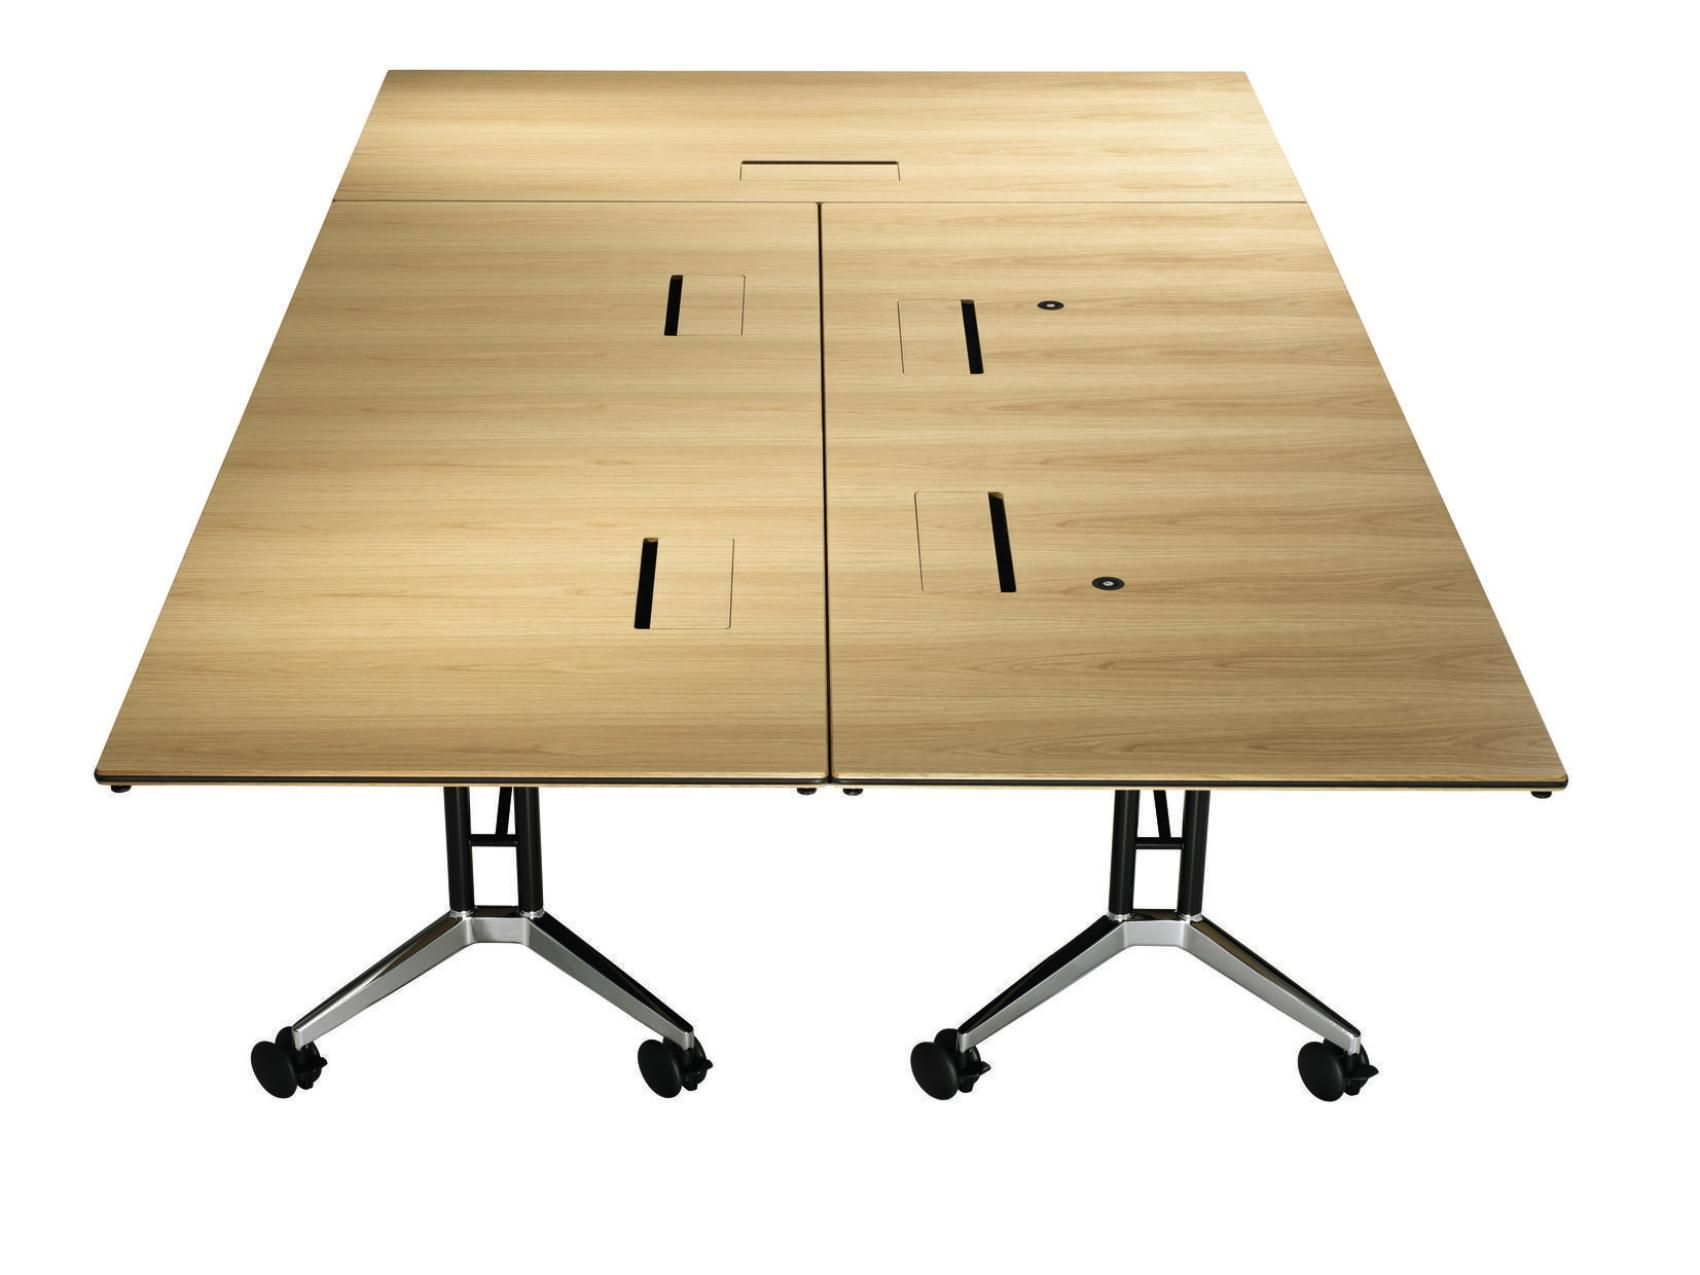 Confair Folding Table - Foldable Conference Table - Design Andreas